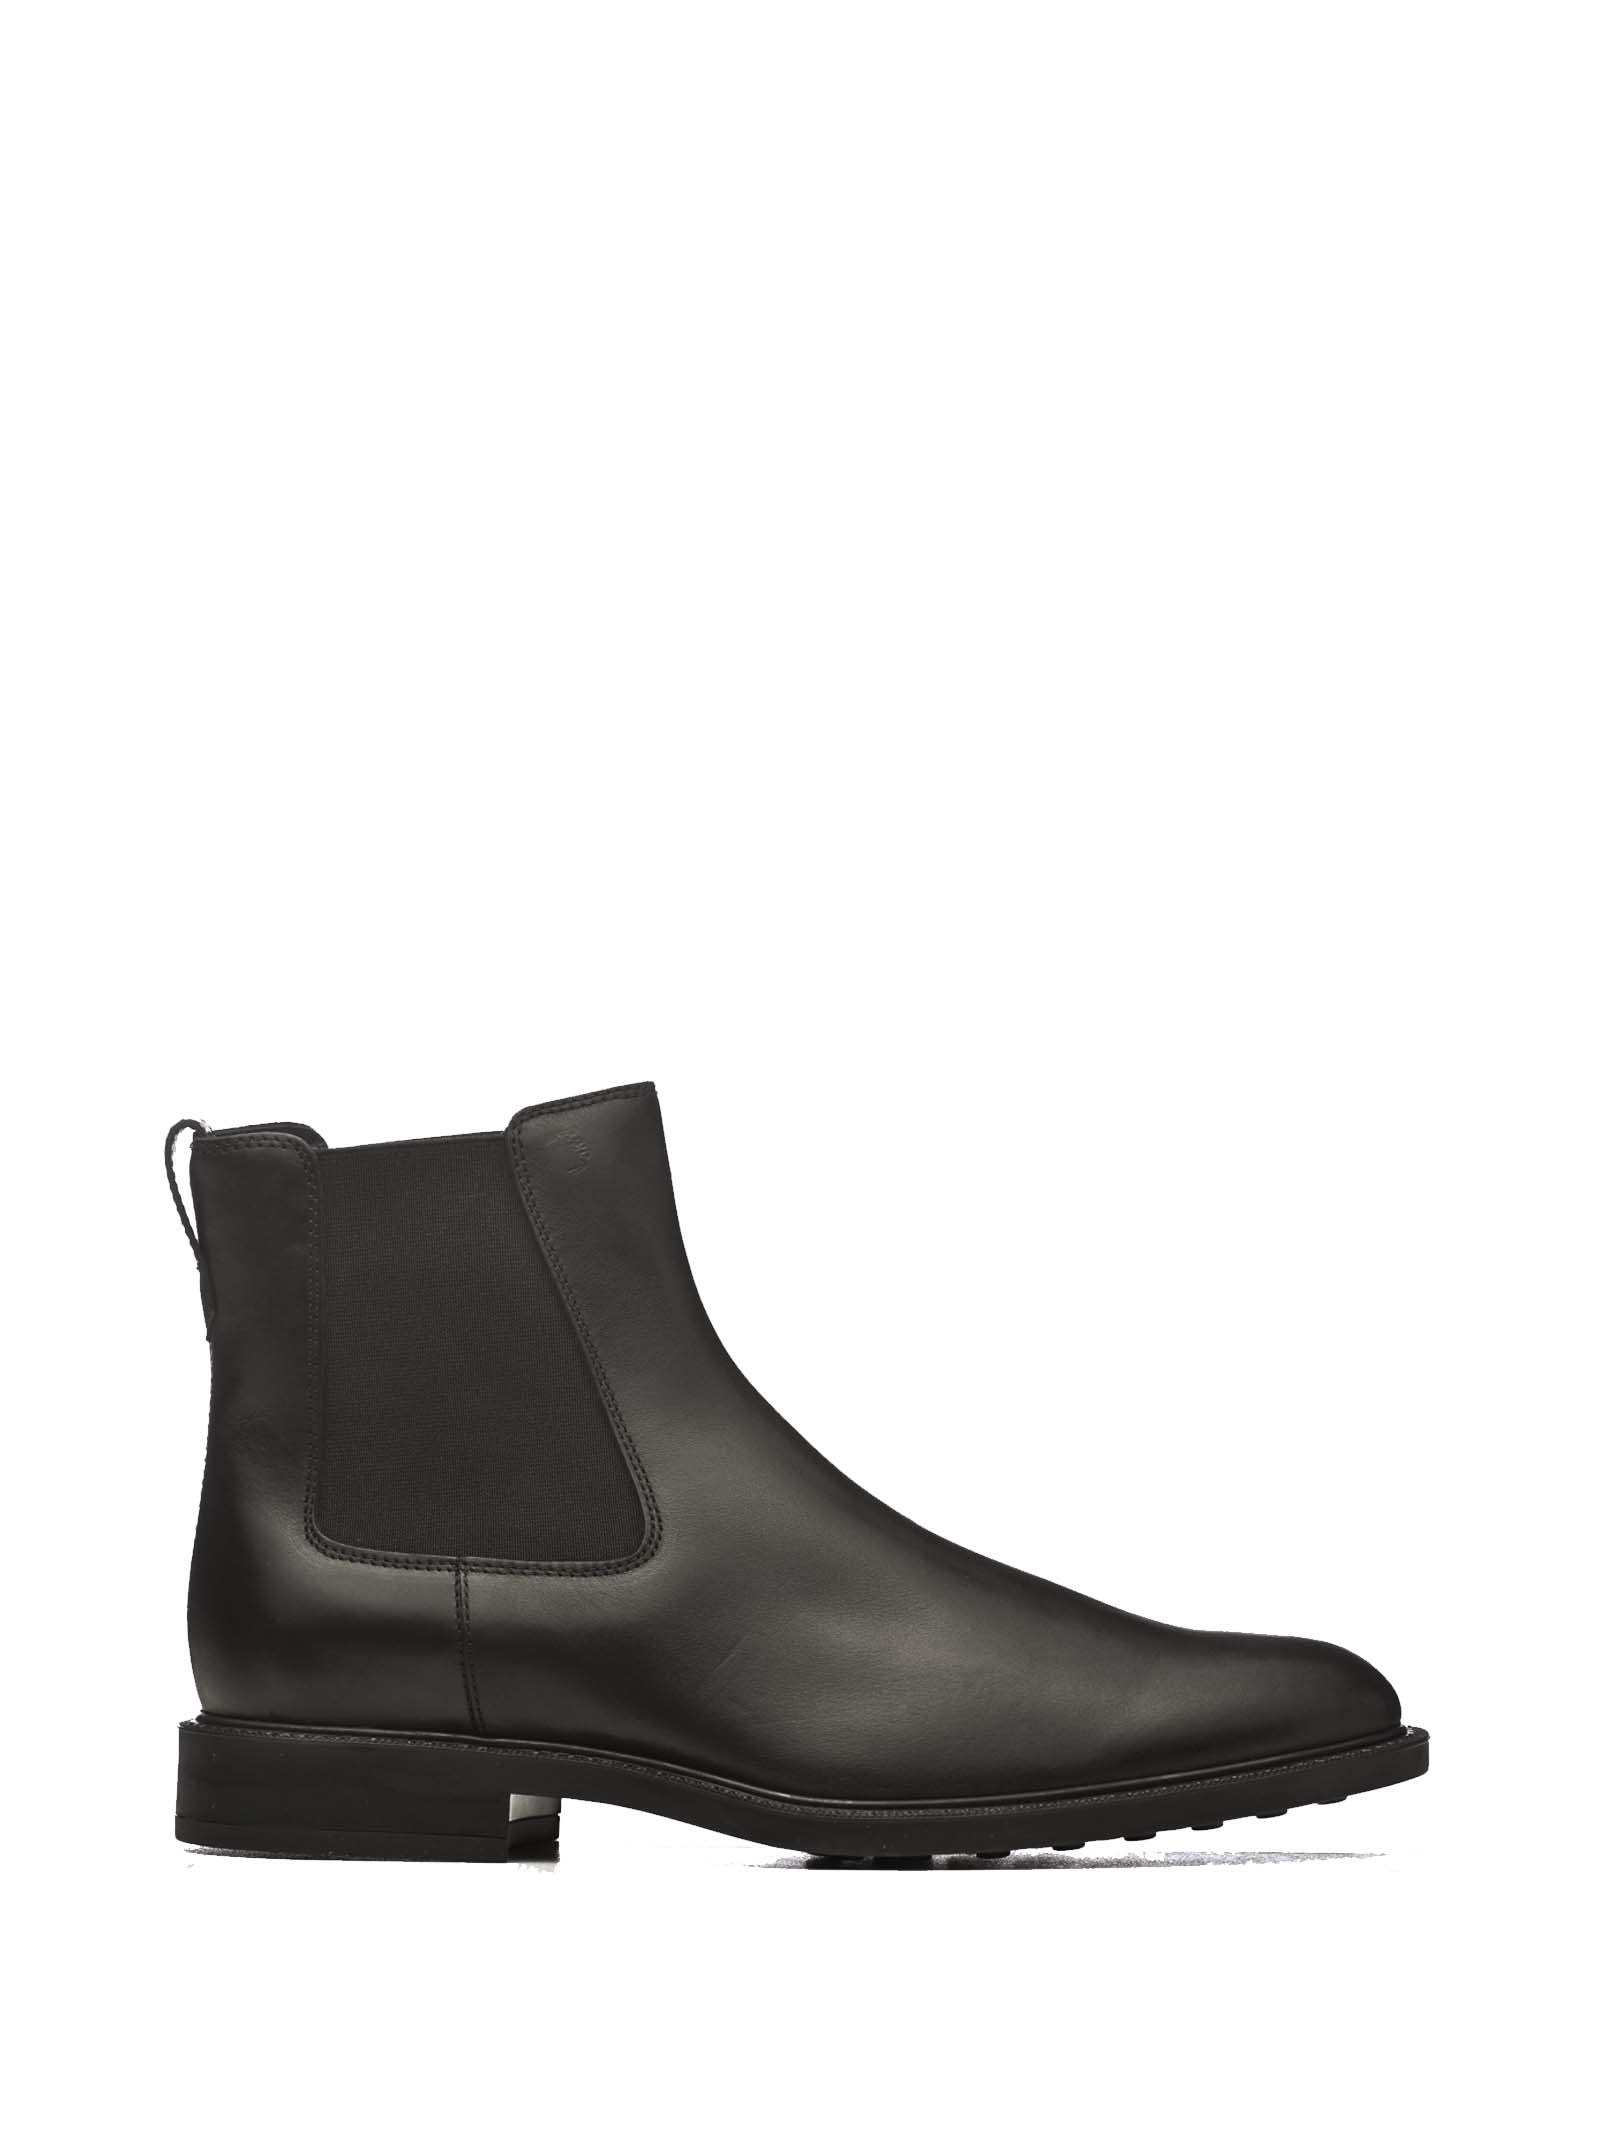 Tods Tods Chelsea Boots